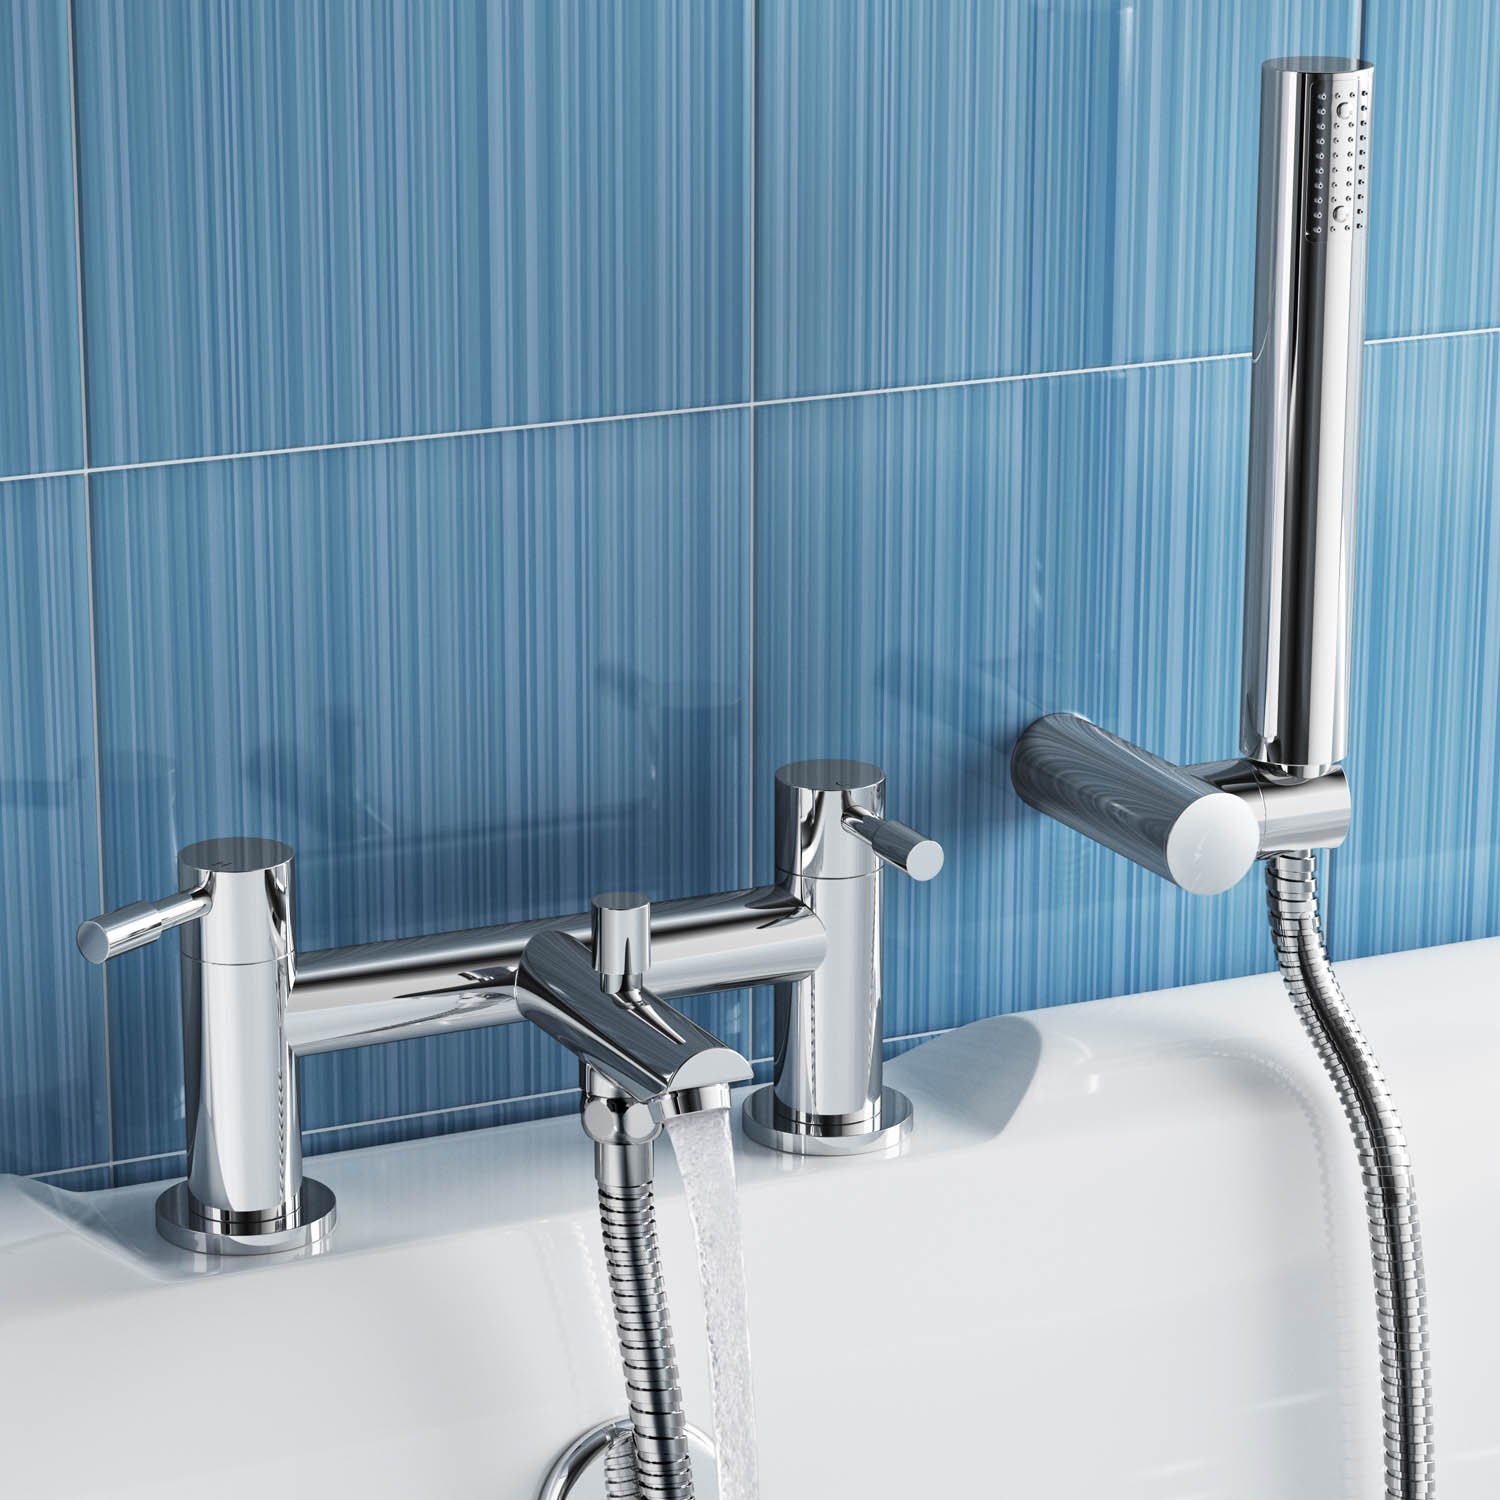 Luxury Bath Filler Mixer Tap with Modern Bathroom Hand Held Shower ...